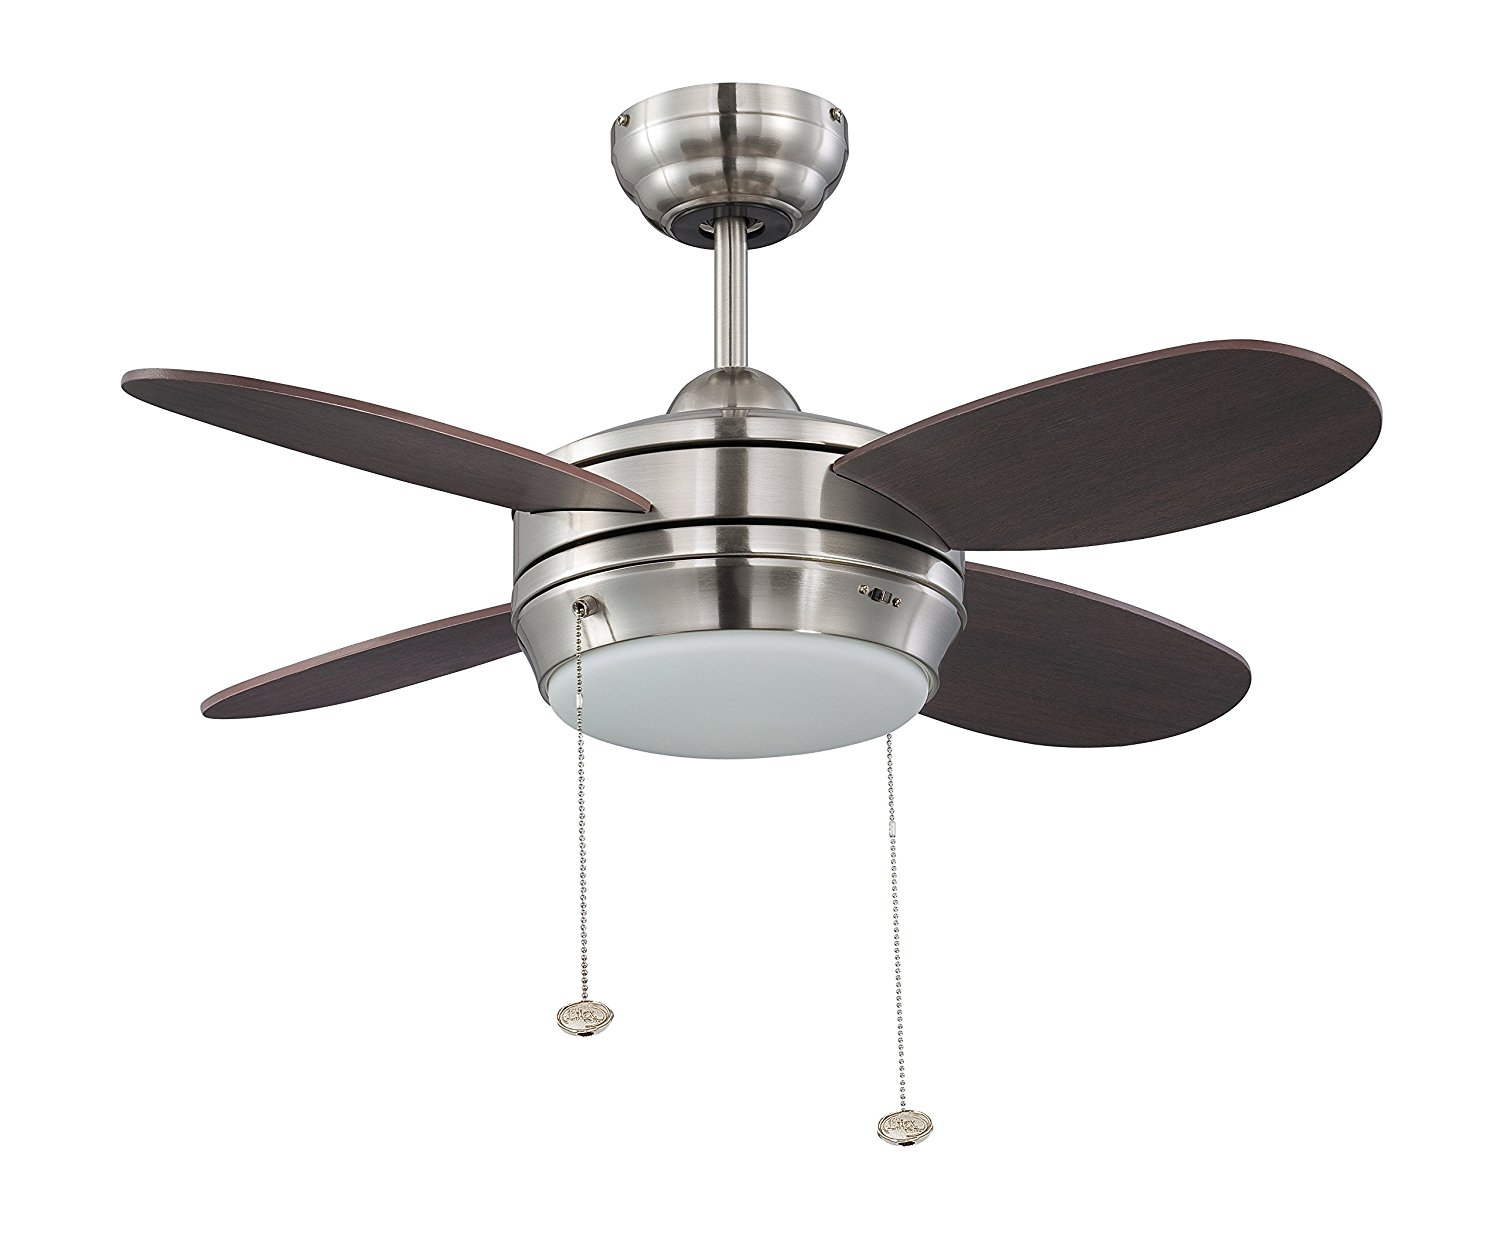 Litex E-MLV36BNK4LK1 Maksim Collection 36-Inch Ceiling Fan with Five Wench Wood Blades and Single Light Kit with Opal Frosted Glass